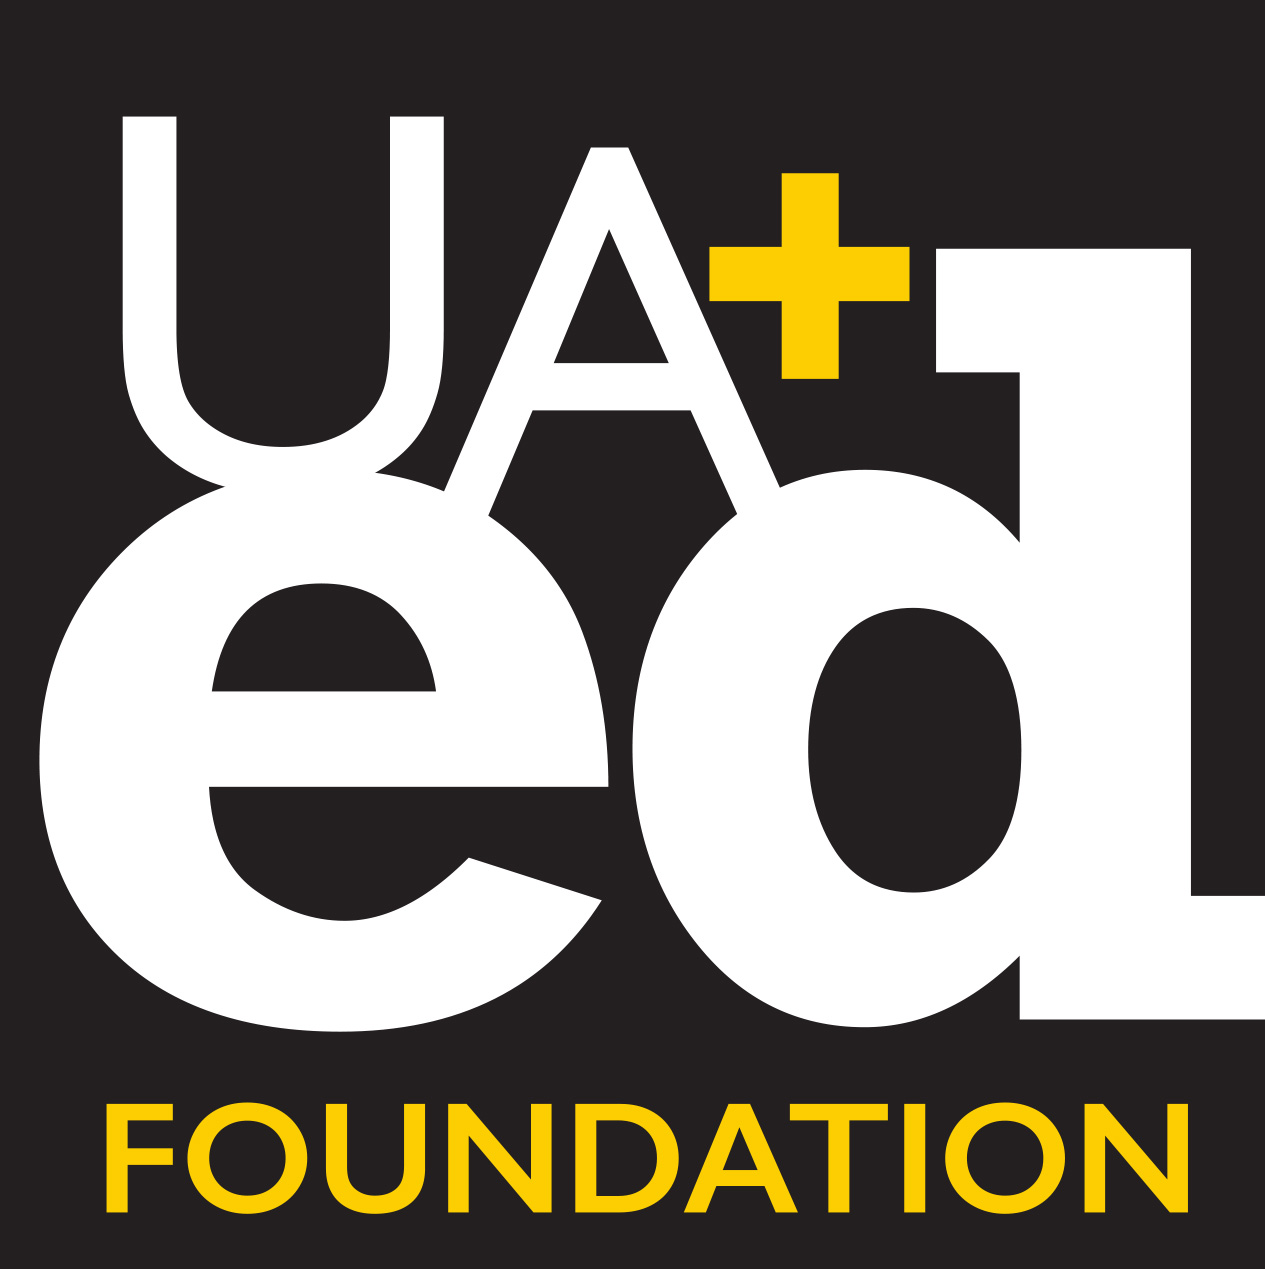 UA+ed Foundation logo